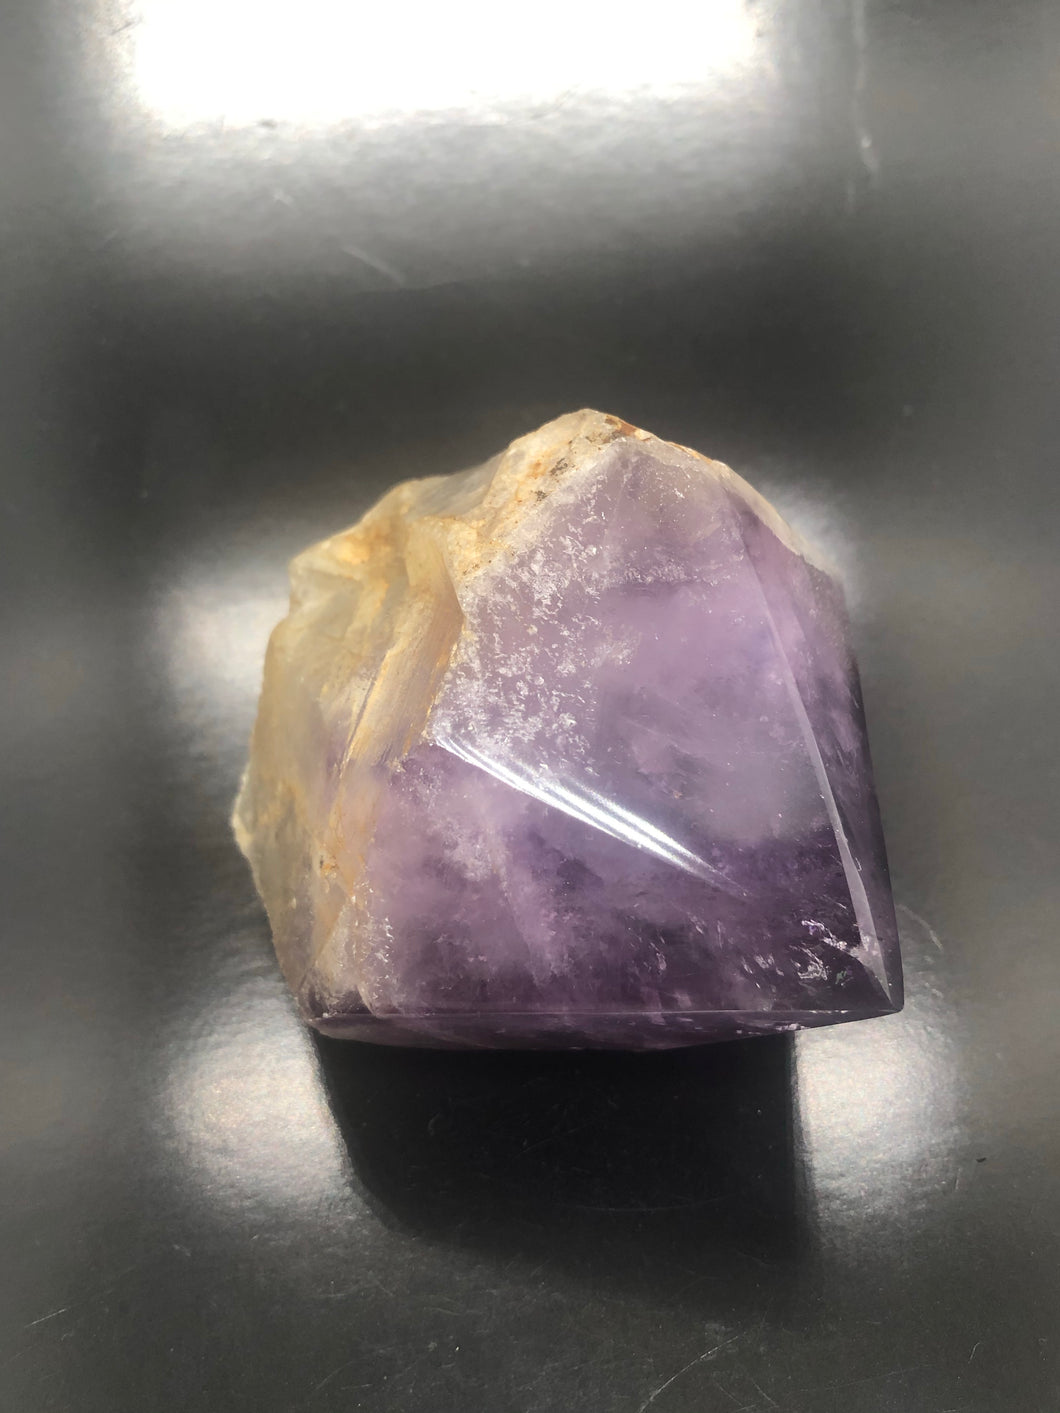 Natural Amethyst with polished Point (channeling Keys & striations)~ Expansion, Release, Clearing, Freedom, Possibility & Divine Wisdom (48)